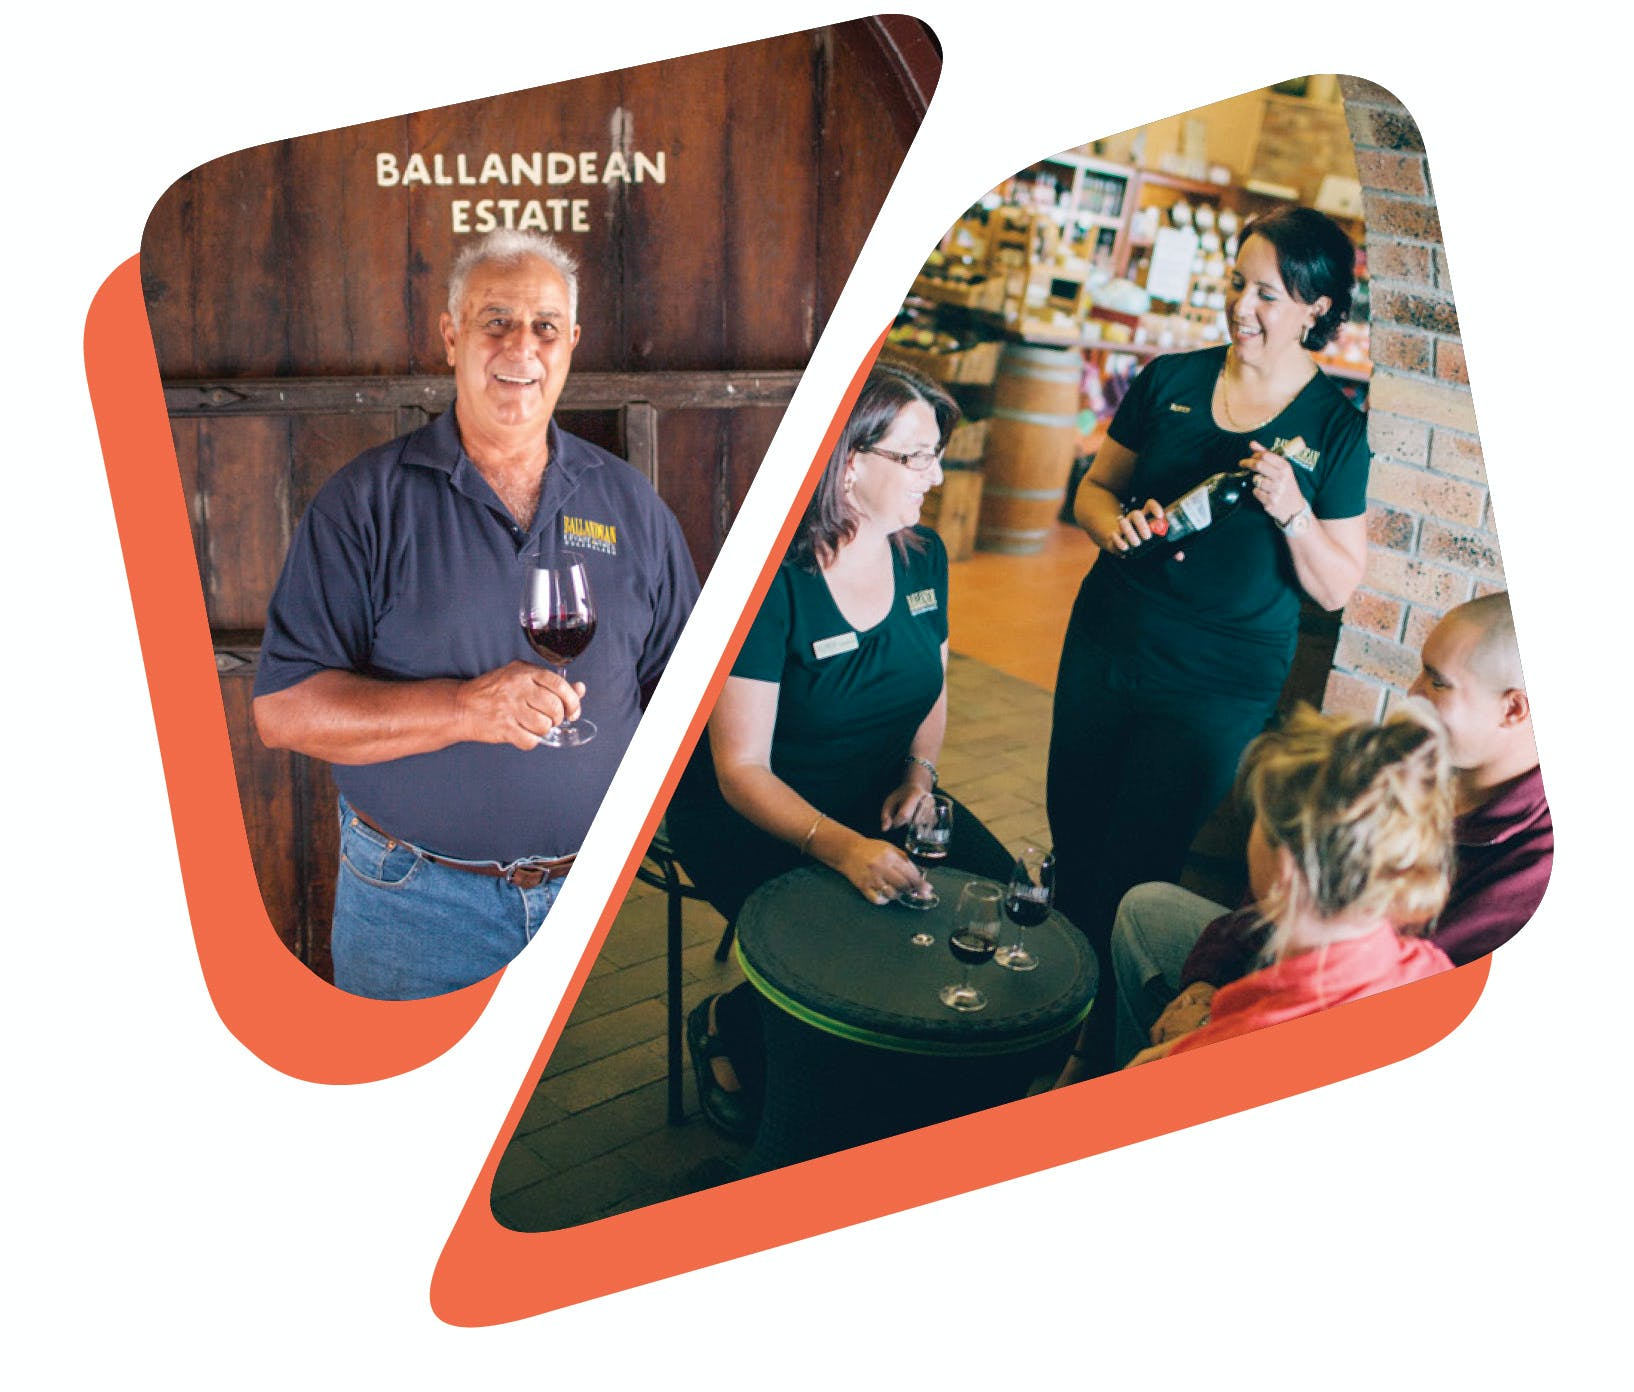 Well worth a visit Ballandean Estate Winery